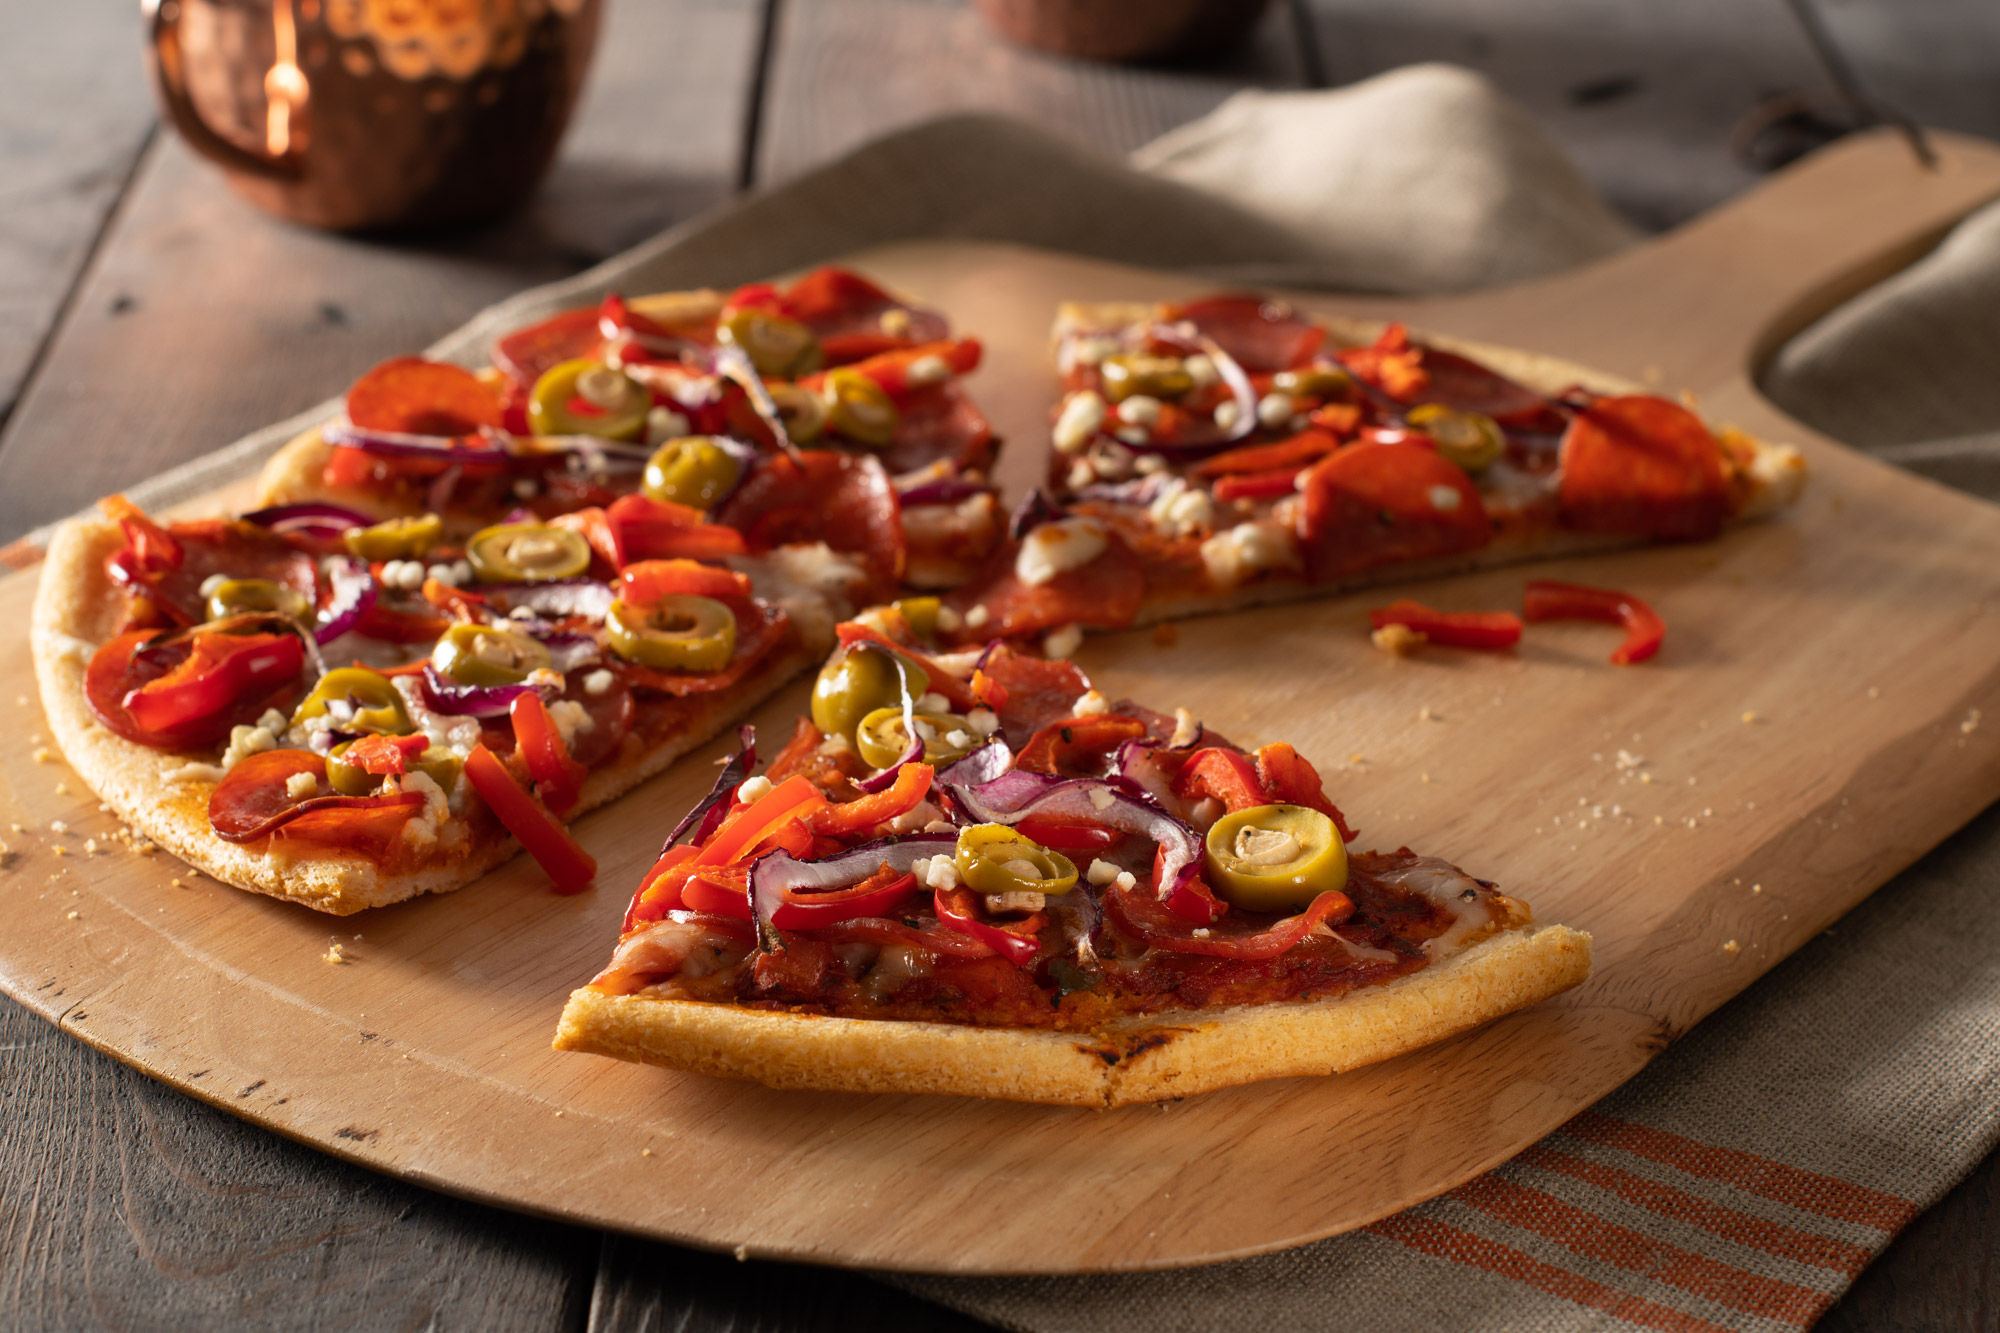 Gluten-Free pizza with pepperoni and peppers